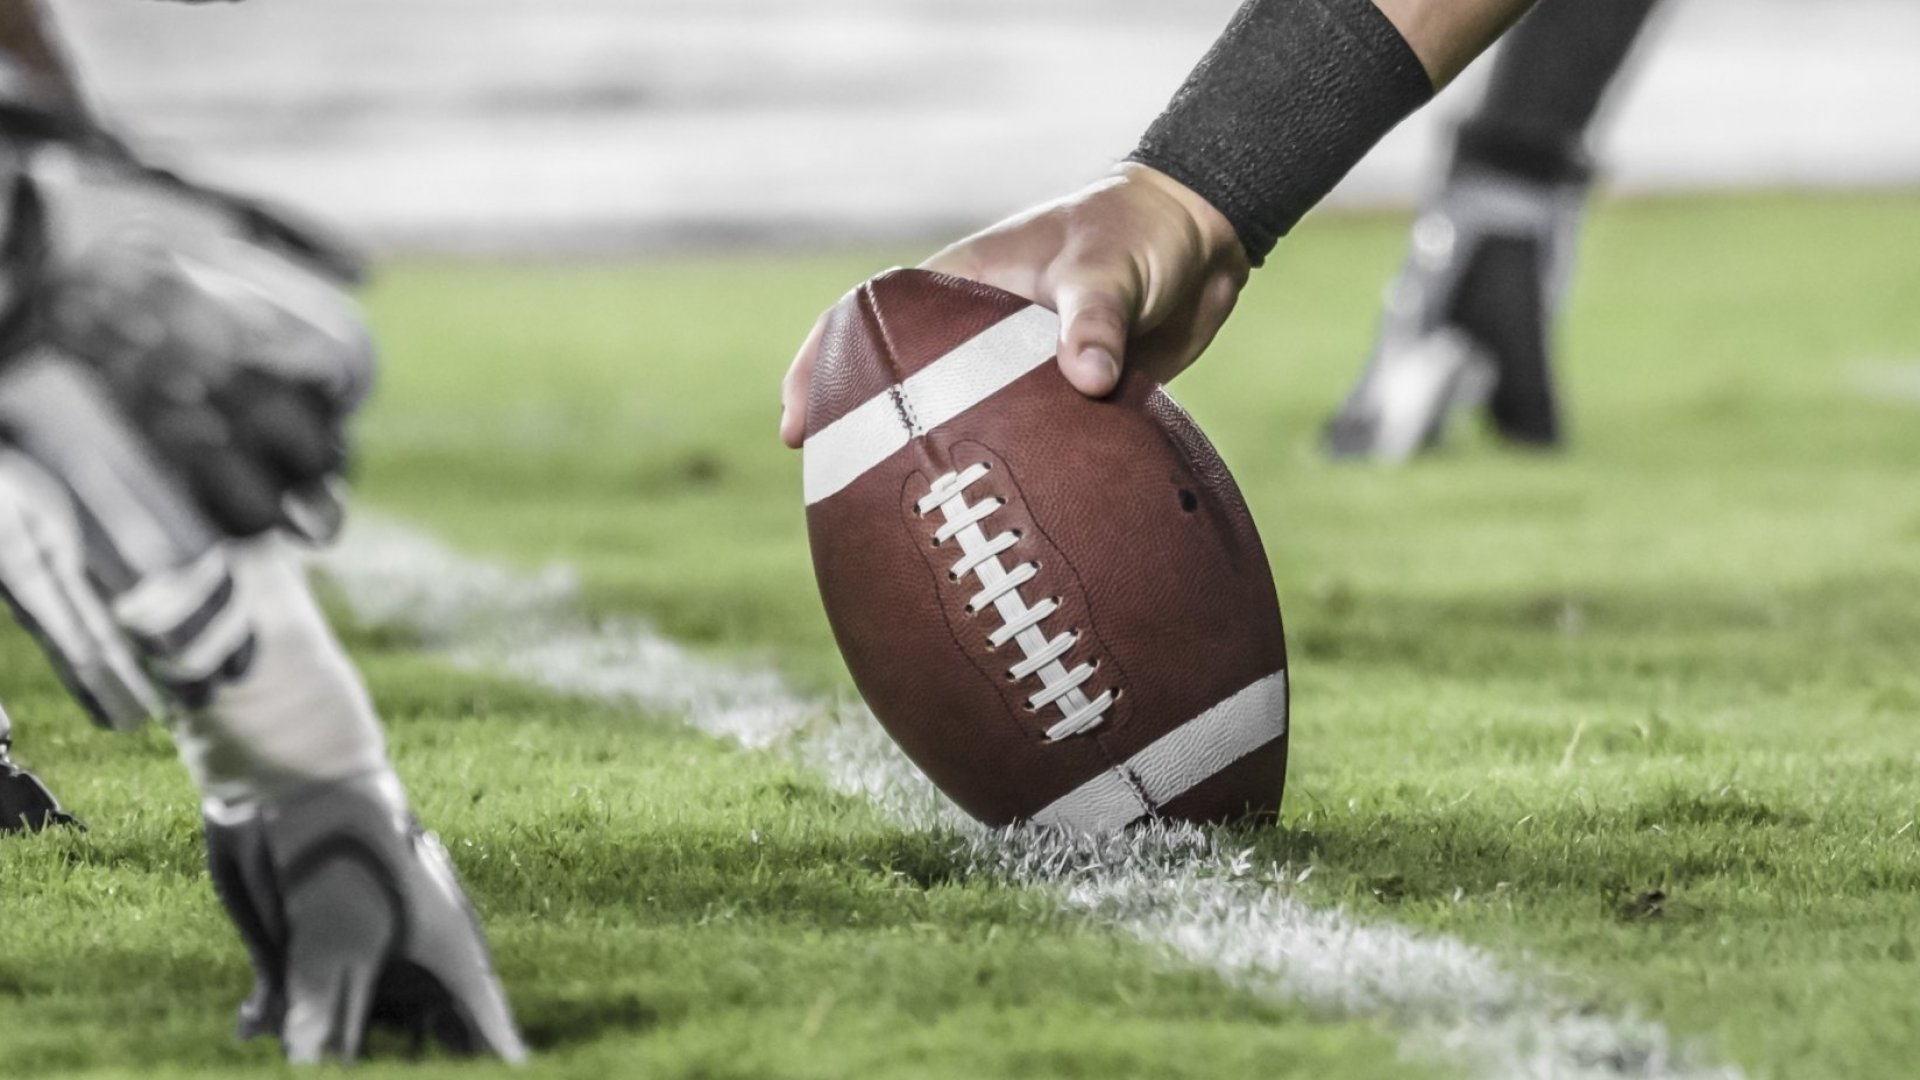 5 Financial Companies Made $5 Million Bets on the Biggest Game of the Year